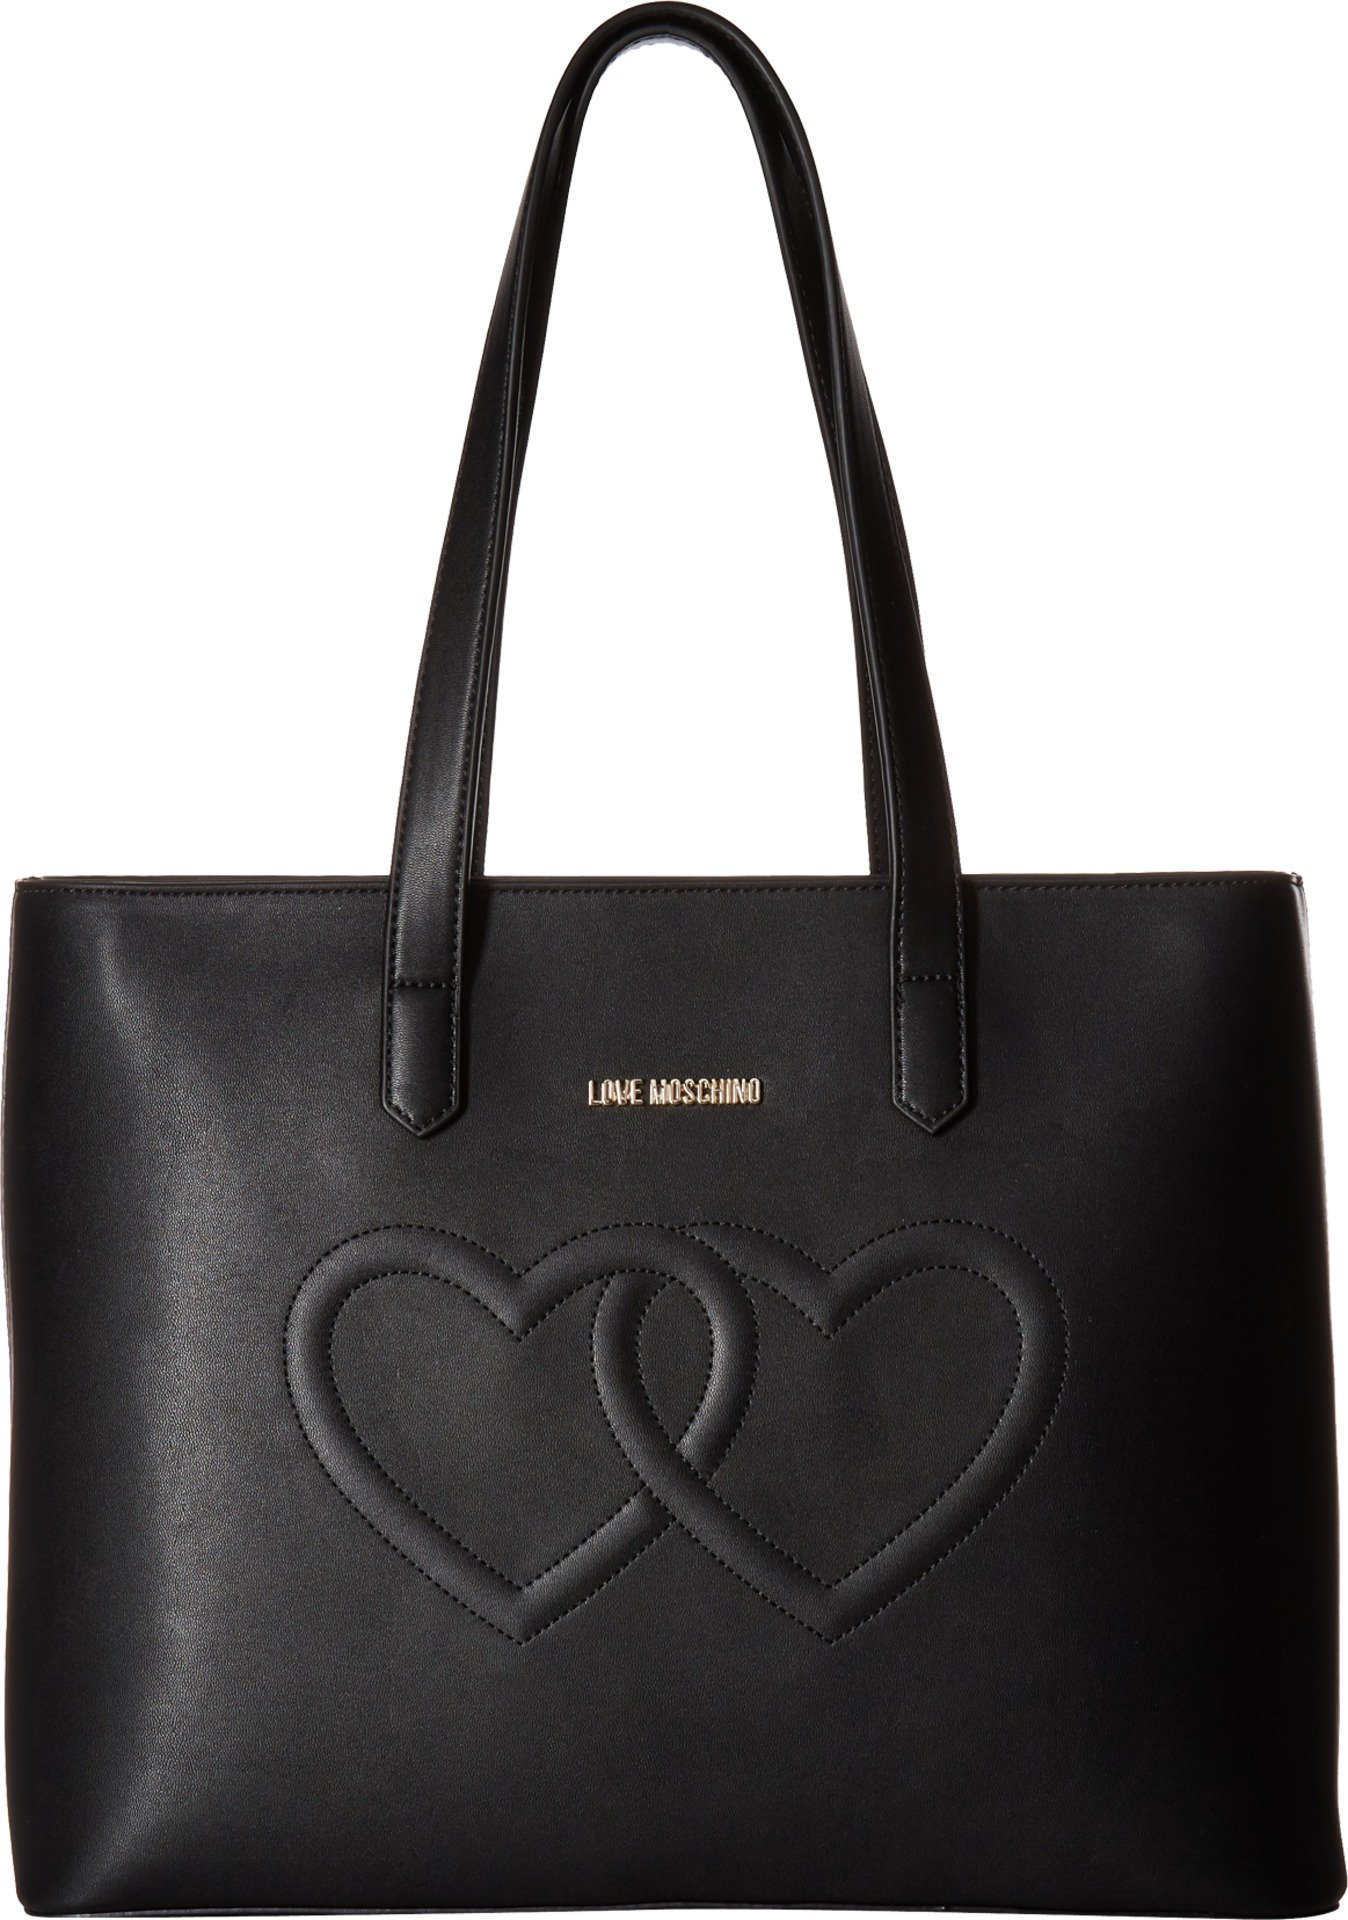 LOVE Moschino Women's Embossed Heart Tote Bag Black One Size